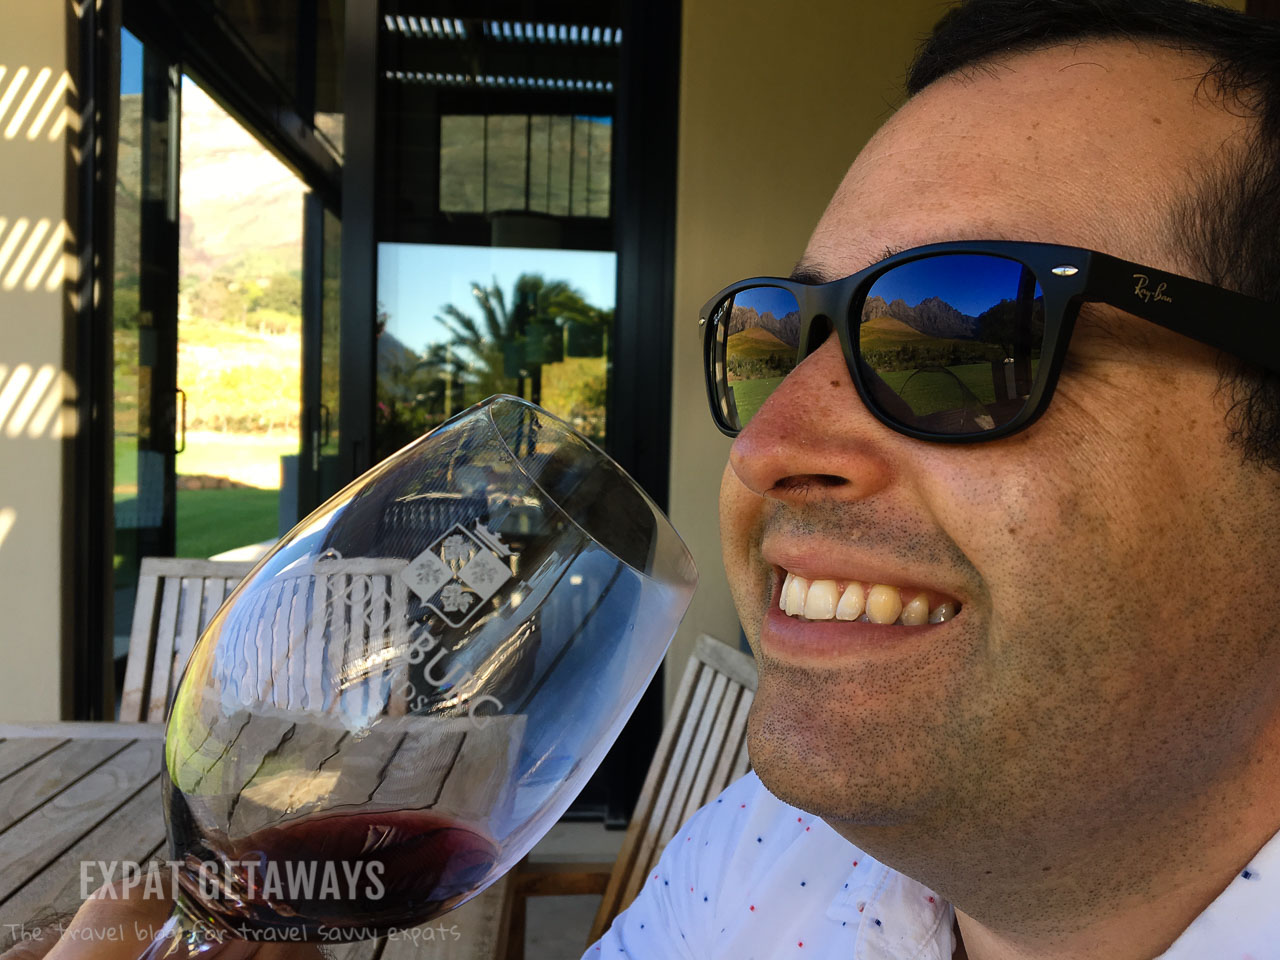 Andrew enjoying a glass of red wine in the Franschhoek wine region just outsite of Cape Town. Expat Getaways 2 Weeks in Southern Africa.